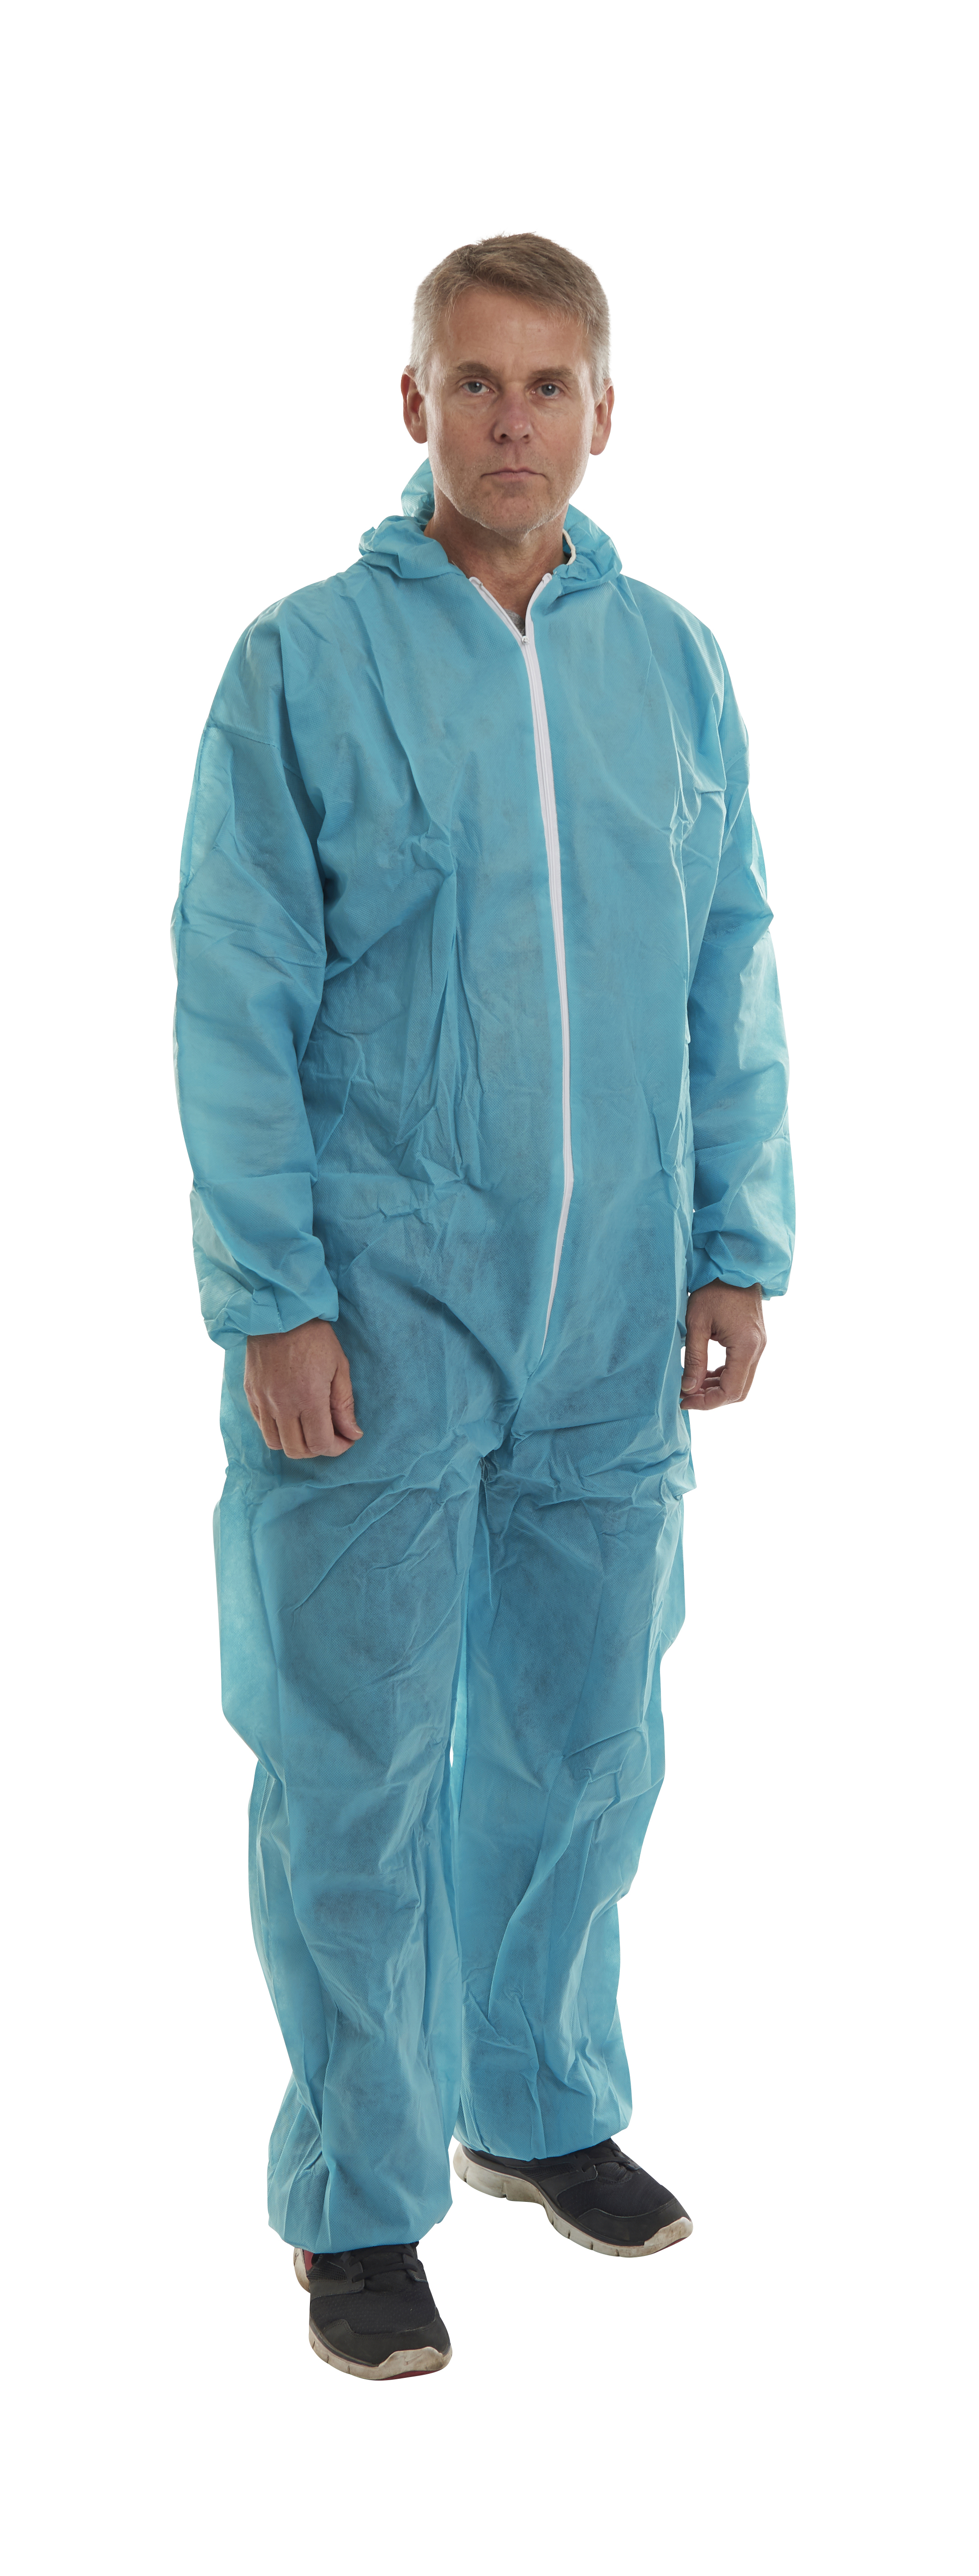 KRUTEX disposable suit, blue, M